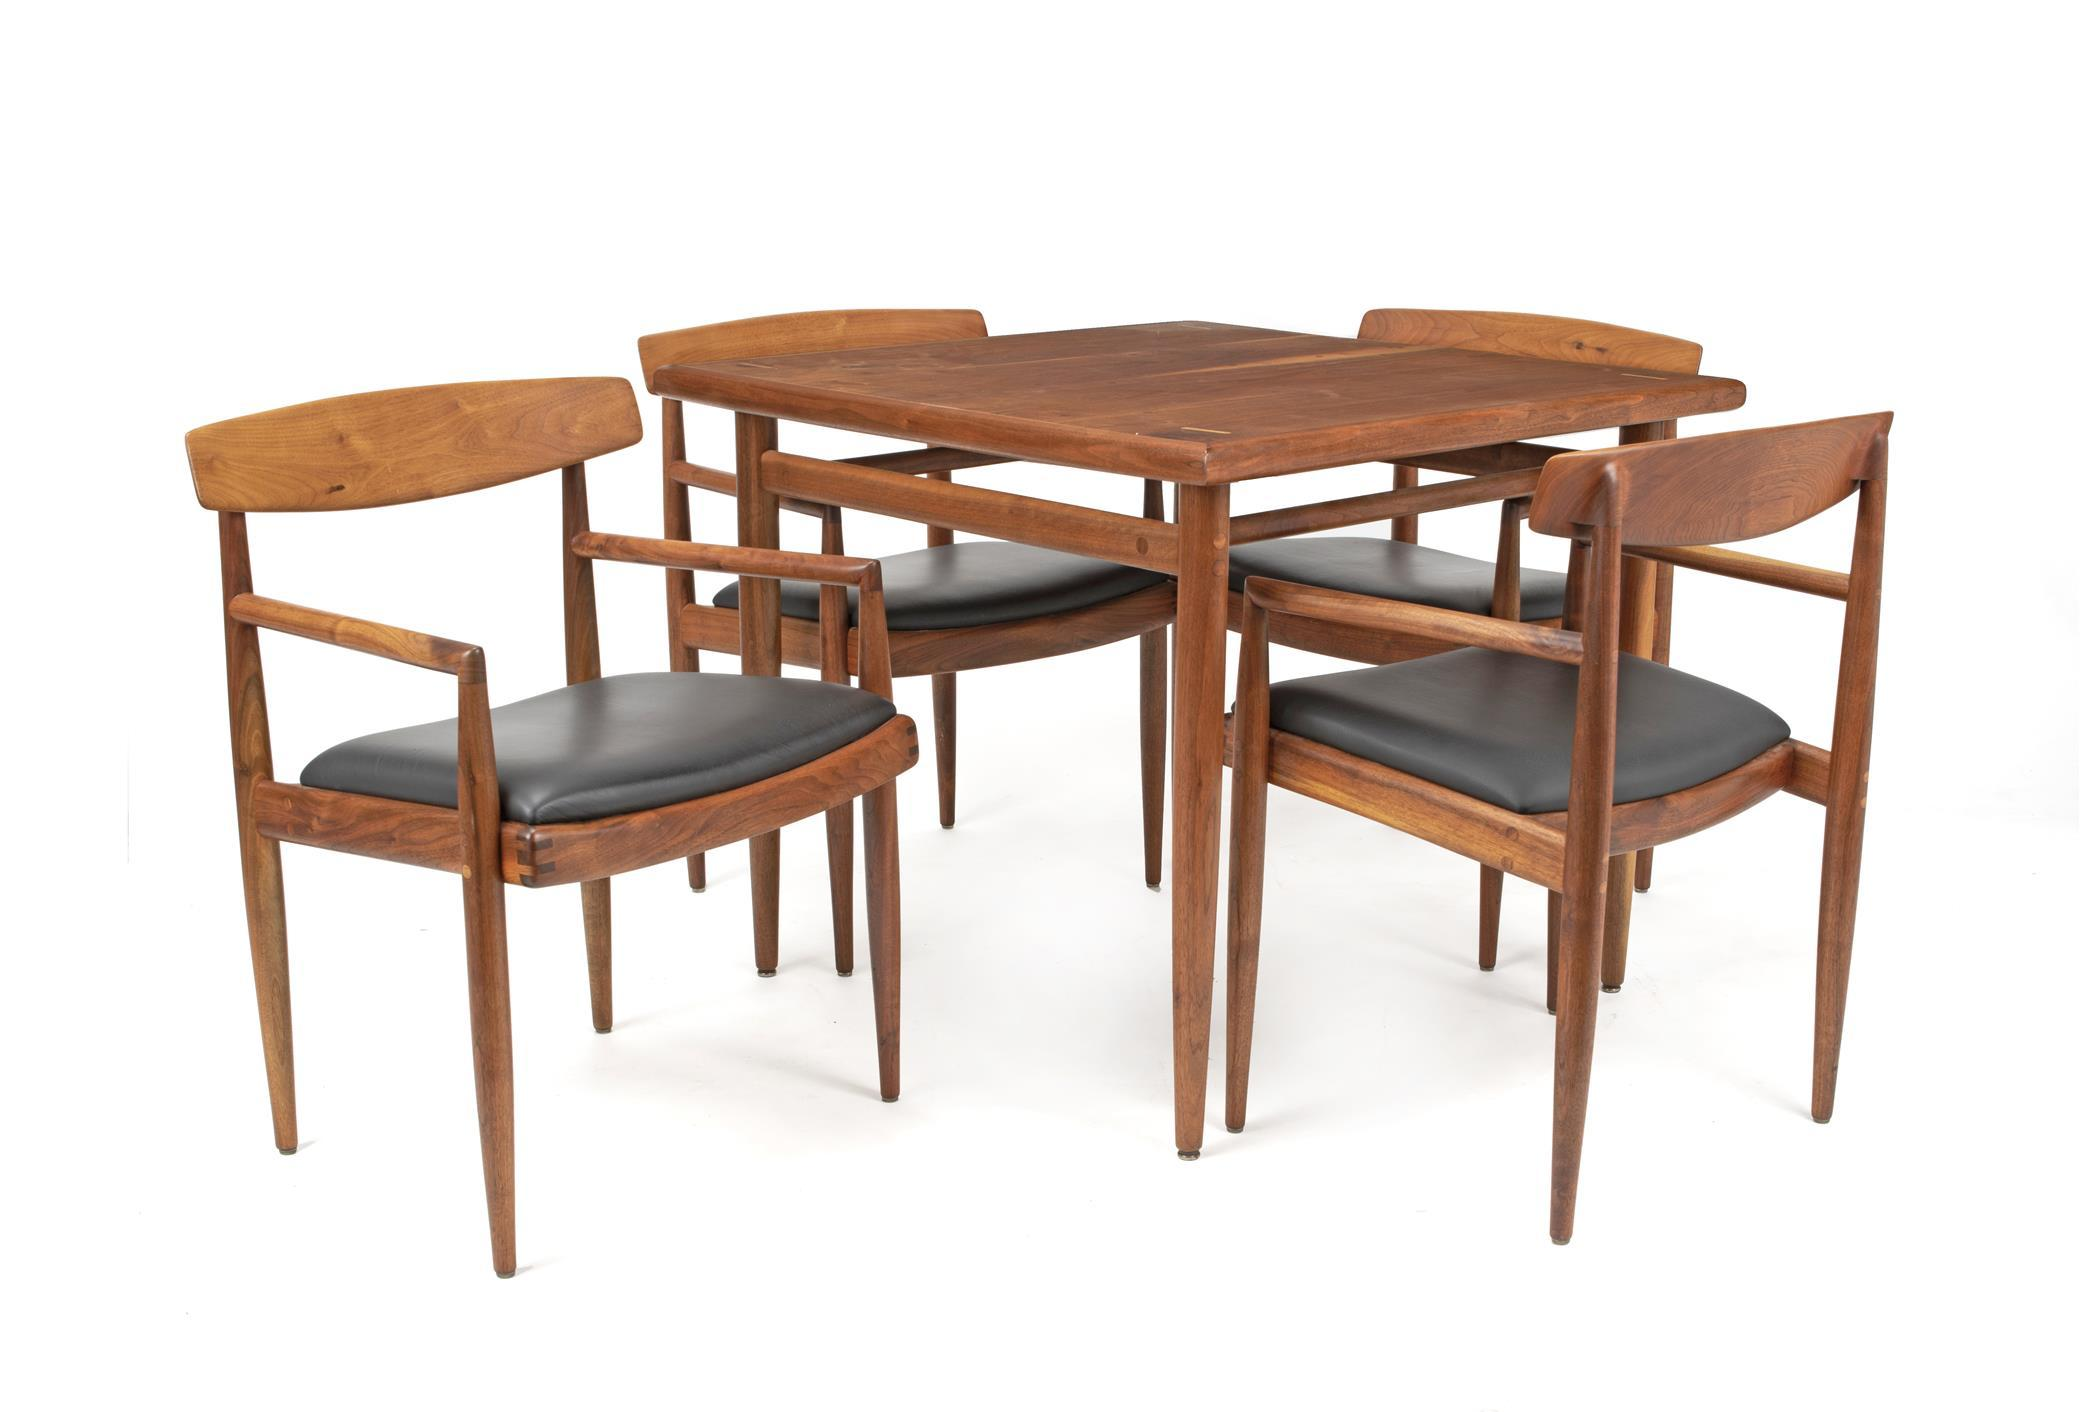 "Sam Maloof, (1916-2009, American), Game table and low-back chairs, 5 pieces, Walnut and black leather, Table: 29.625"" H x 35.125"" W x 3"